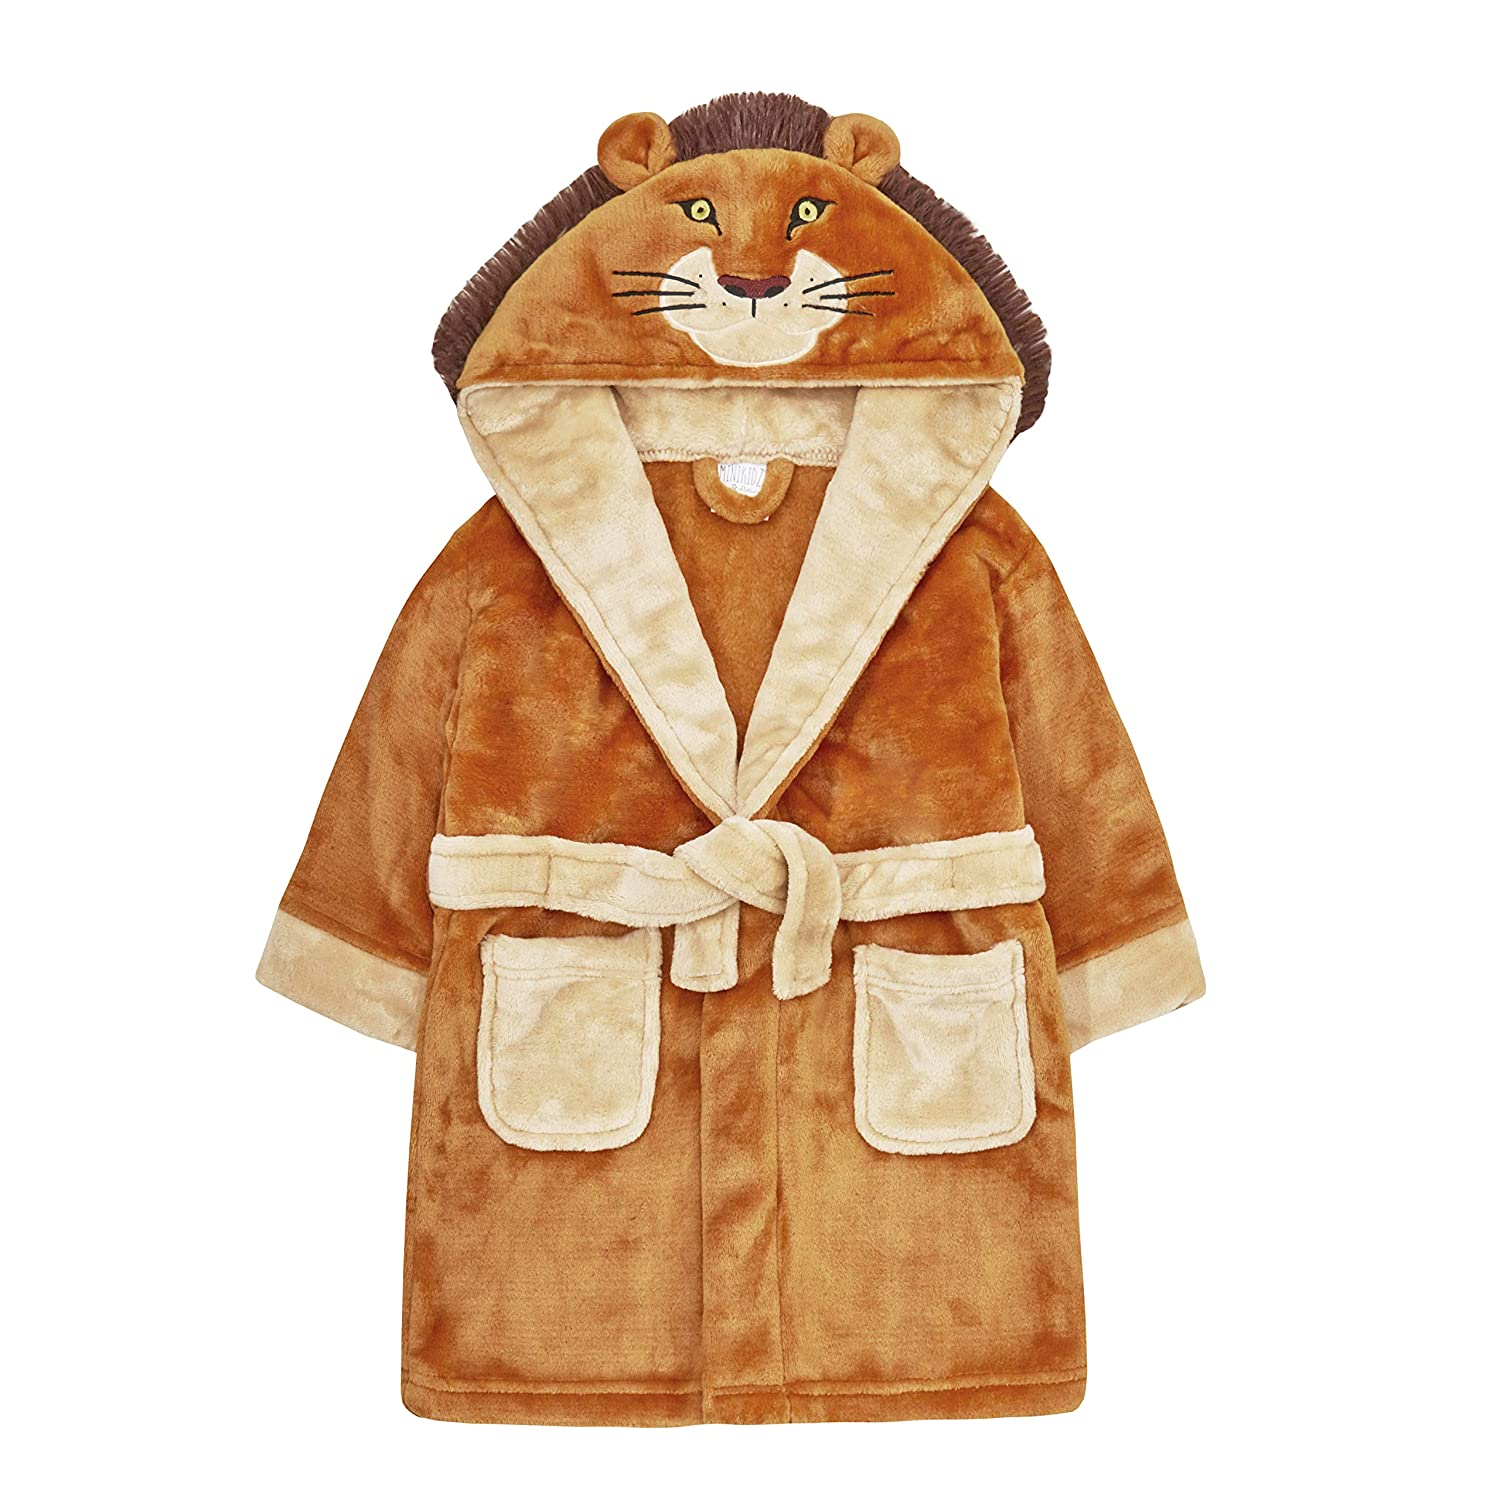 Minikidz Childrens Novelty Lion Dressing Gown with Tail